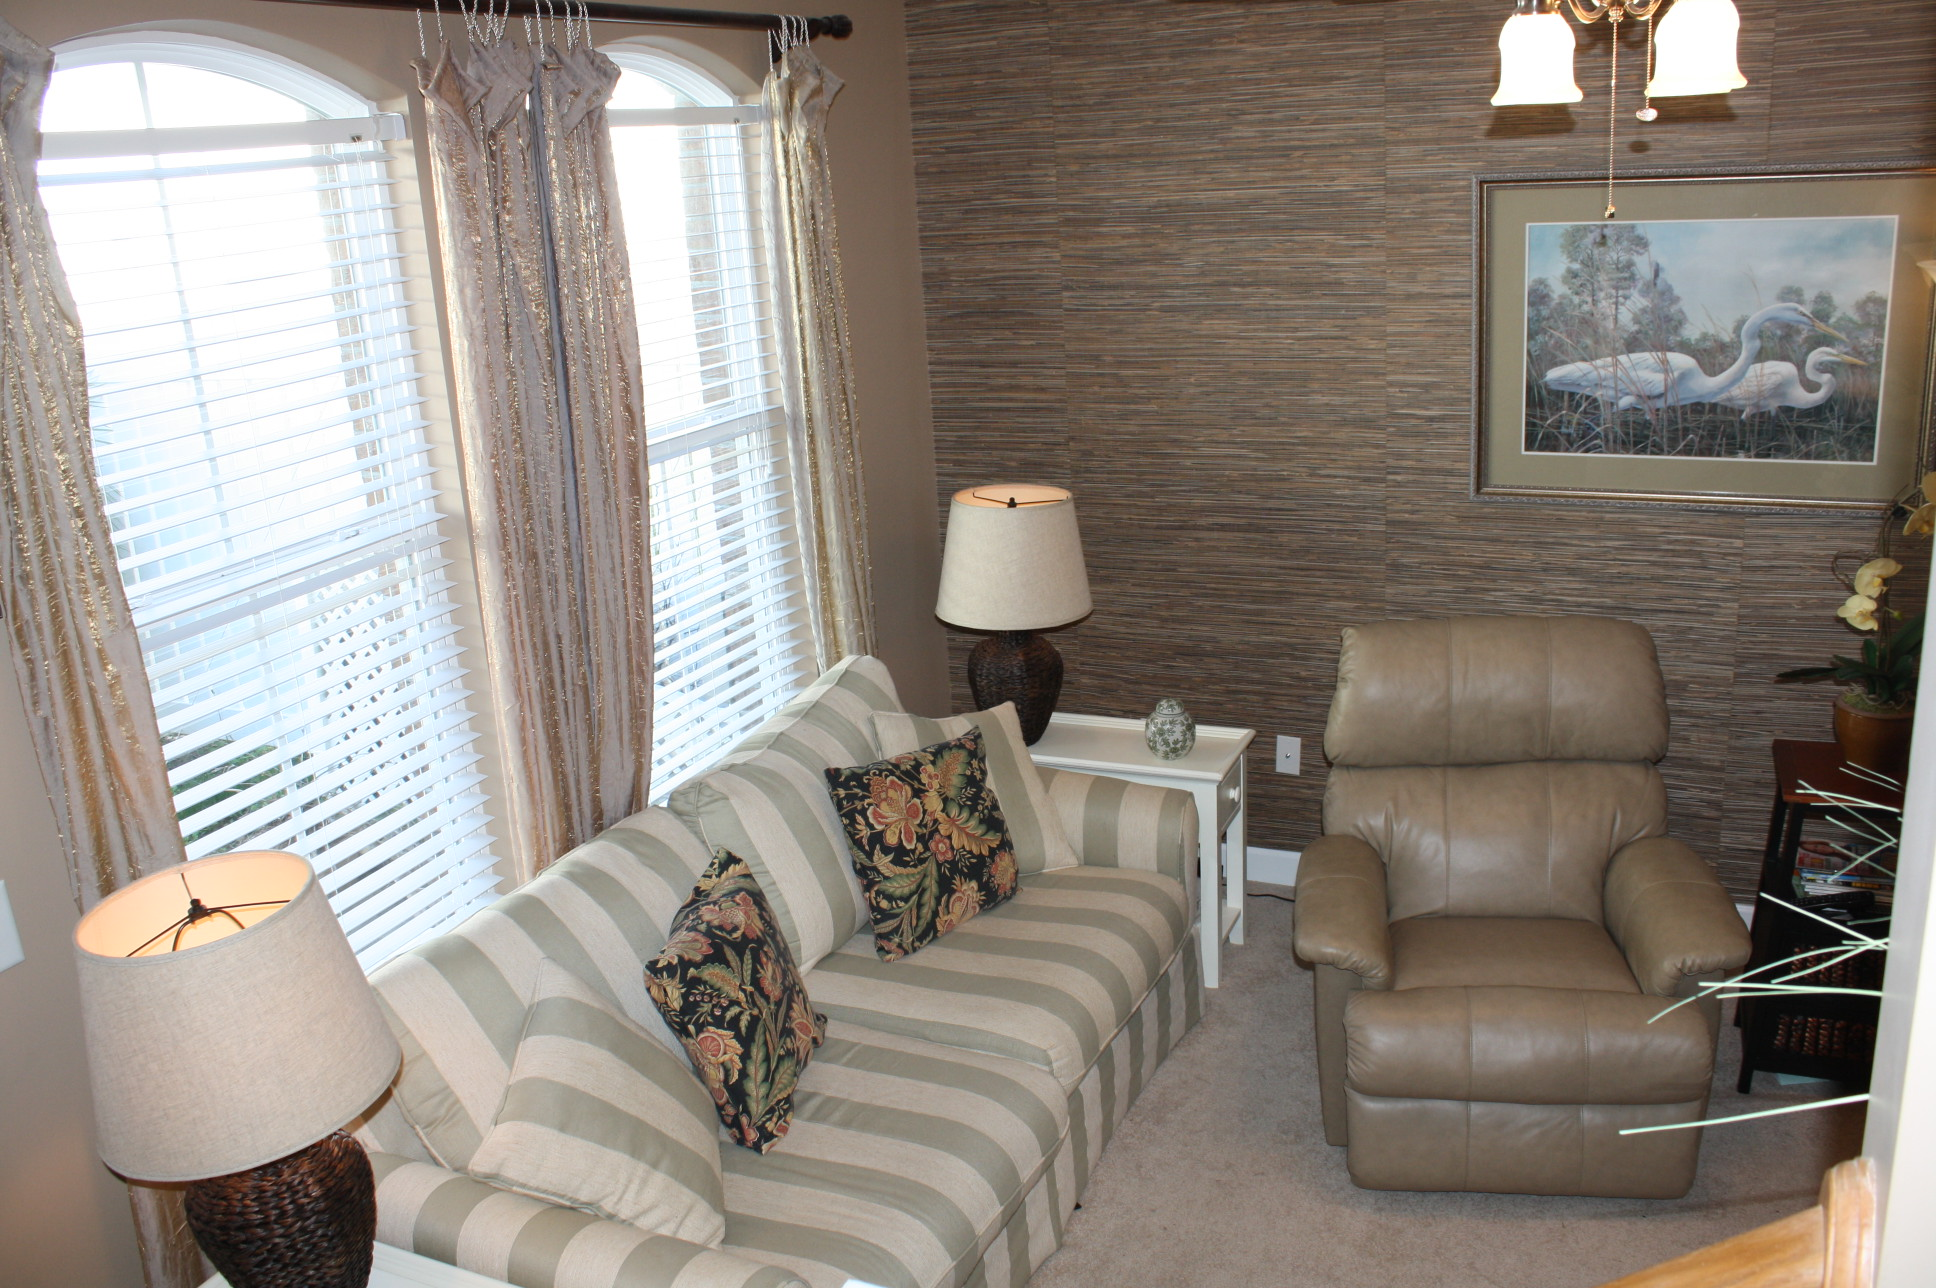 Market Common townhome for Sale